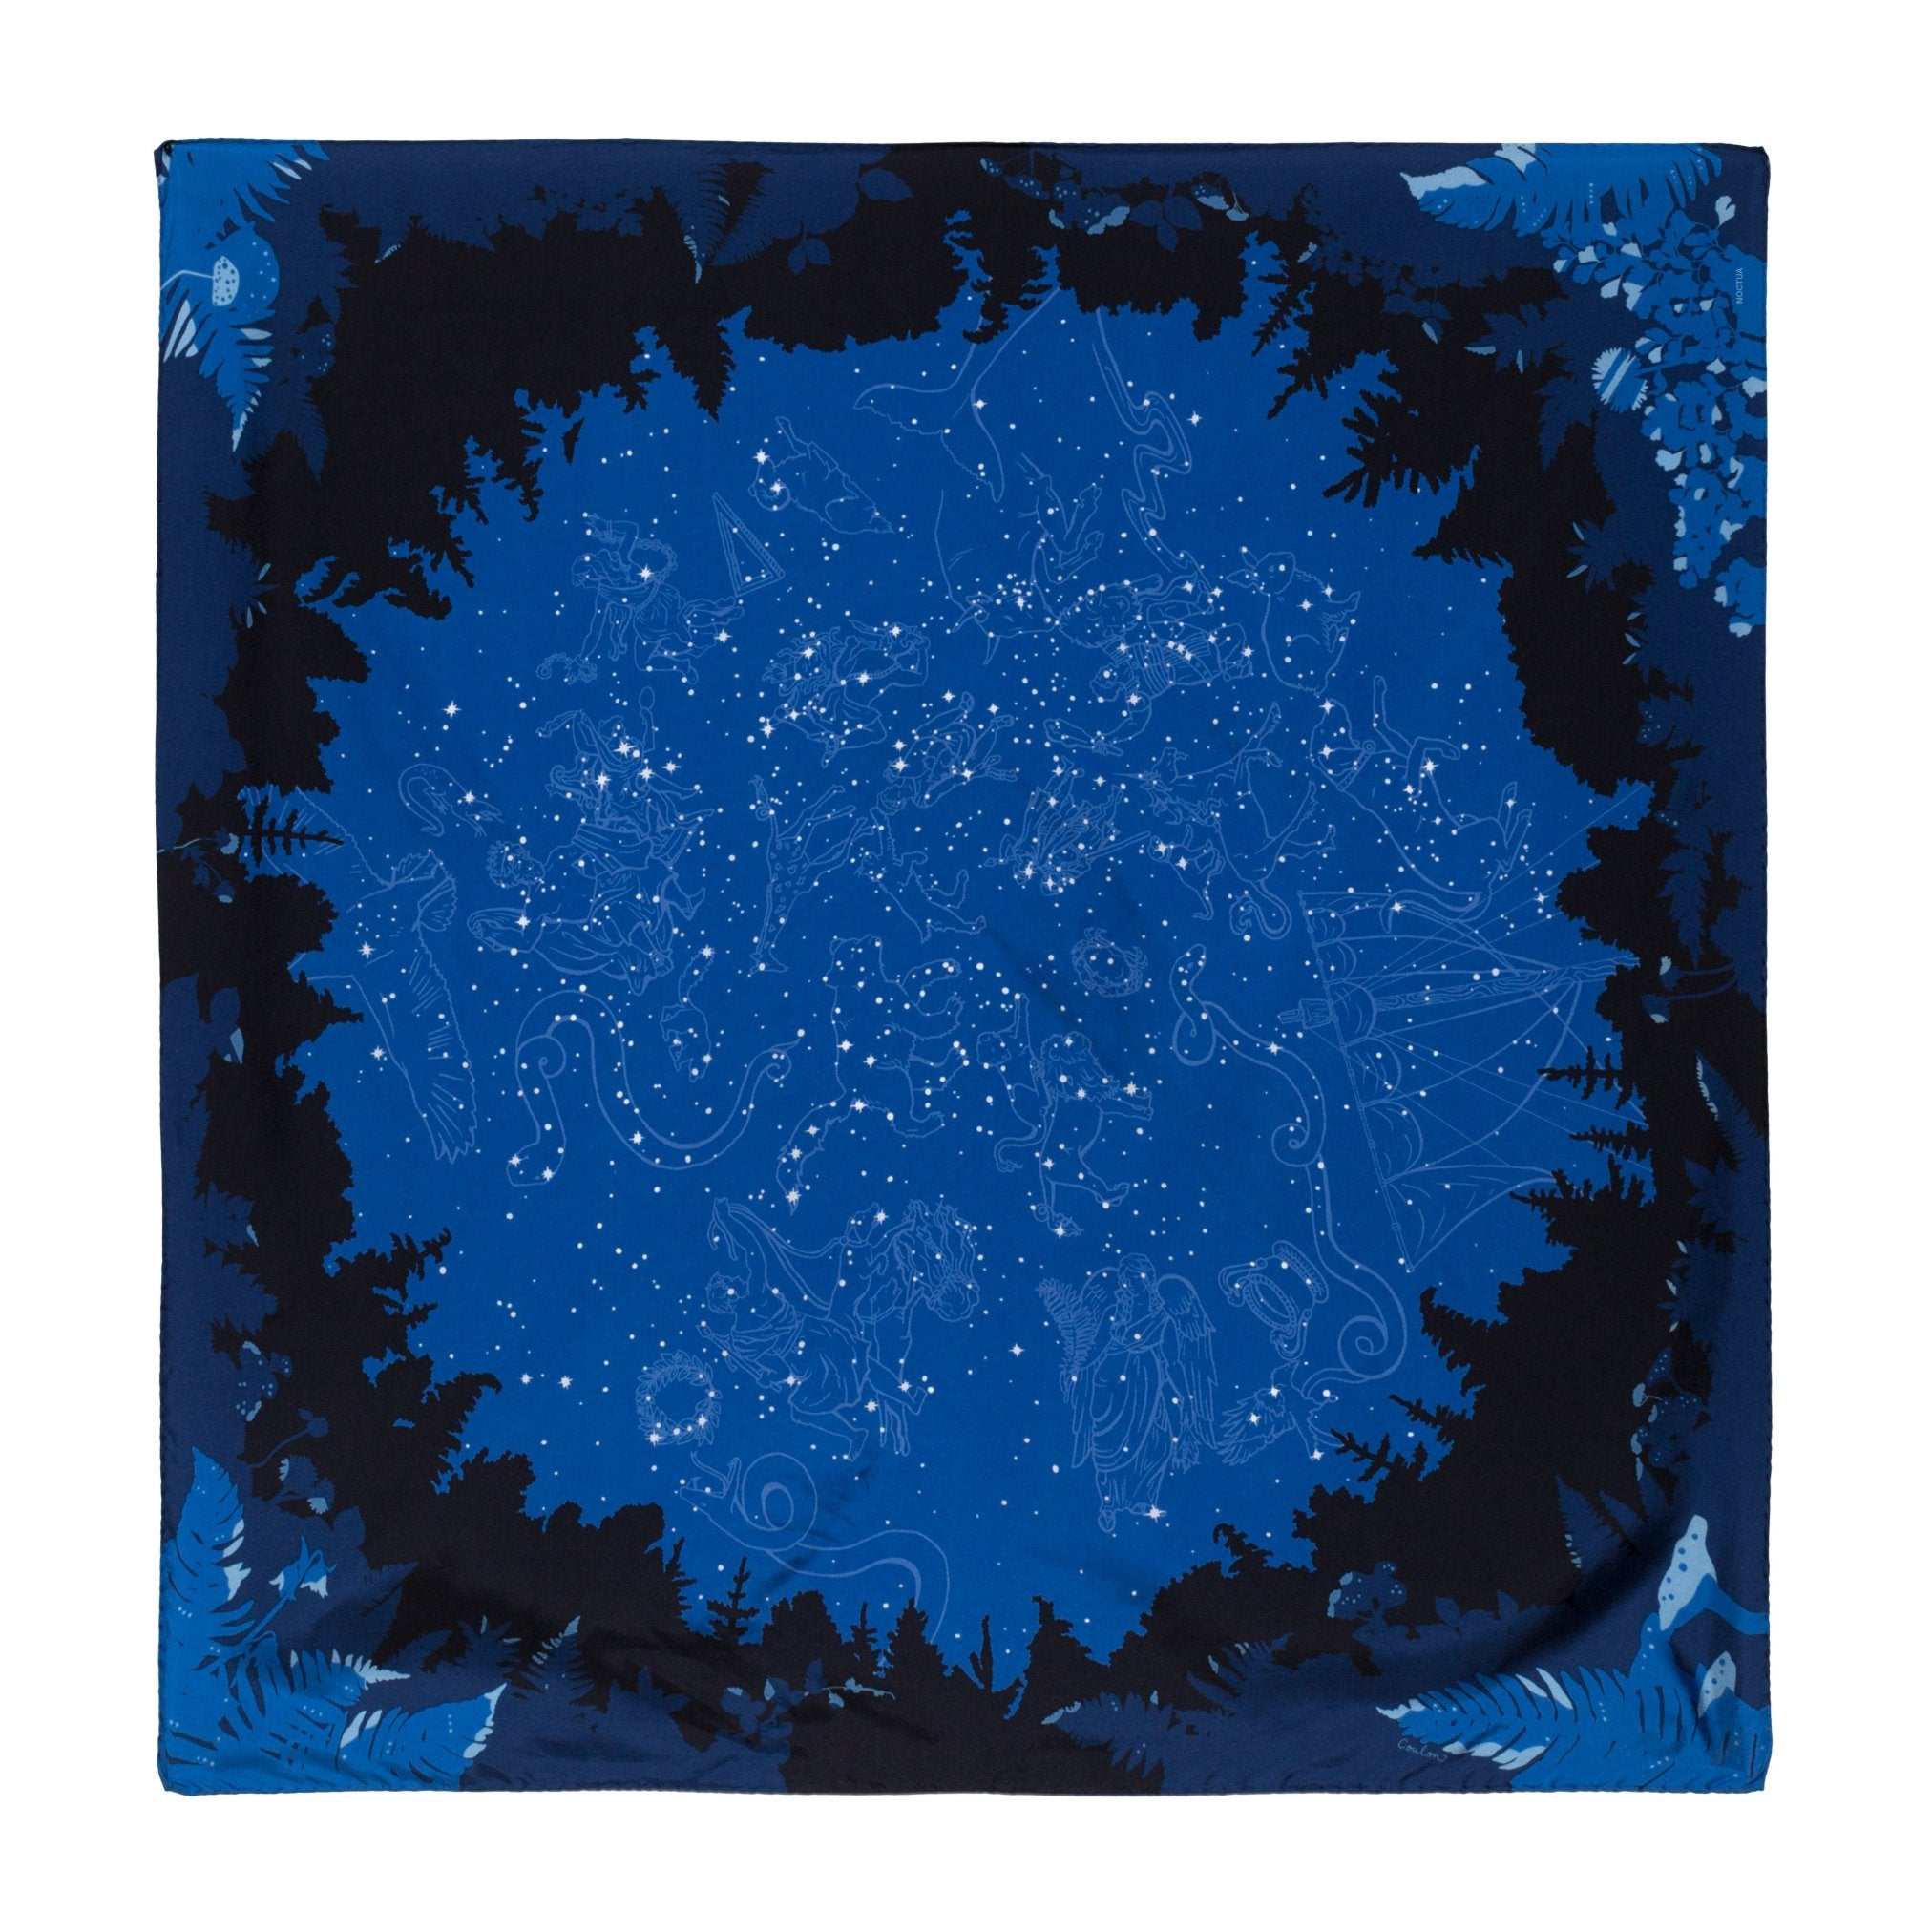 "Noctua - Nightfall's Fortune, 36X36"" Silk Twill Scarf, Blue and Navy"